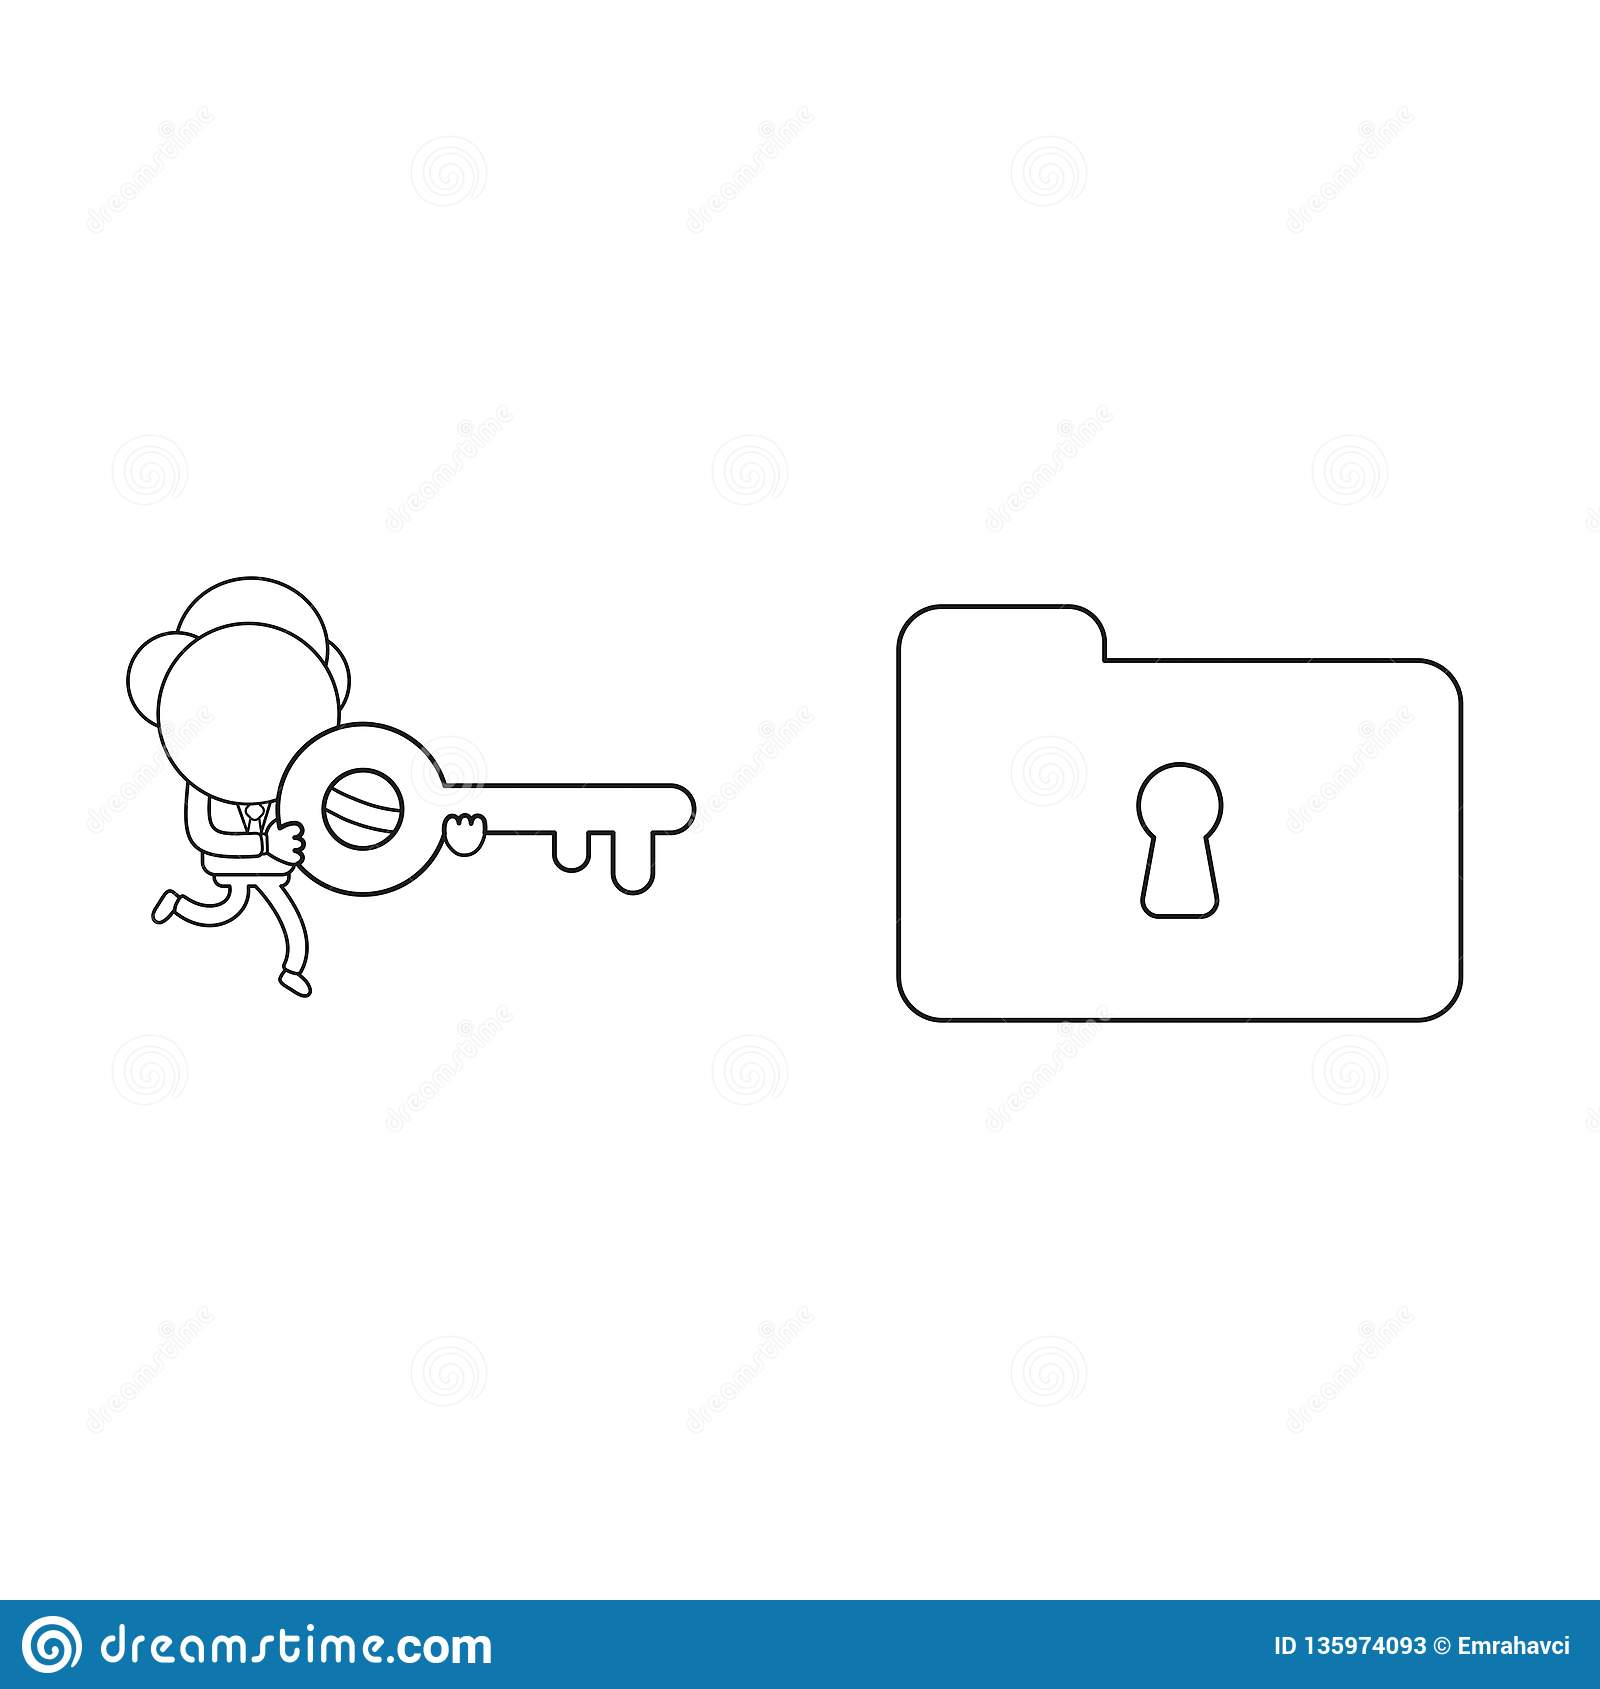 Vector illustration of businessman character running and carrying keyhole to lock or unlock file folder. Black outline